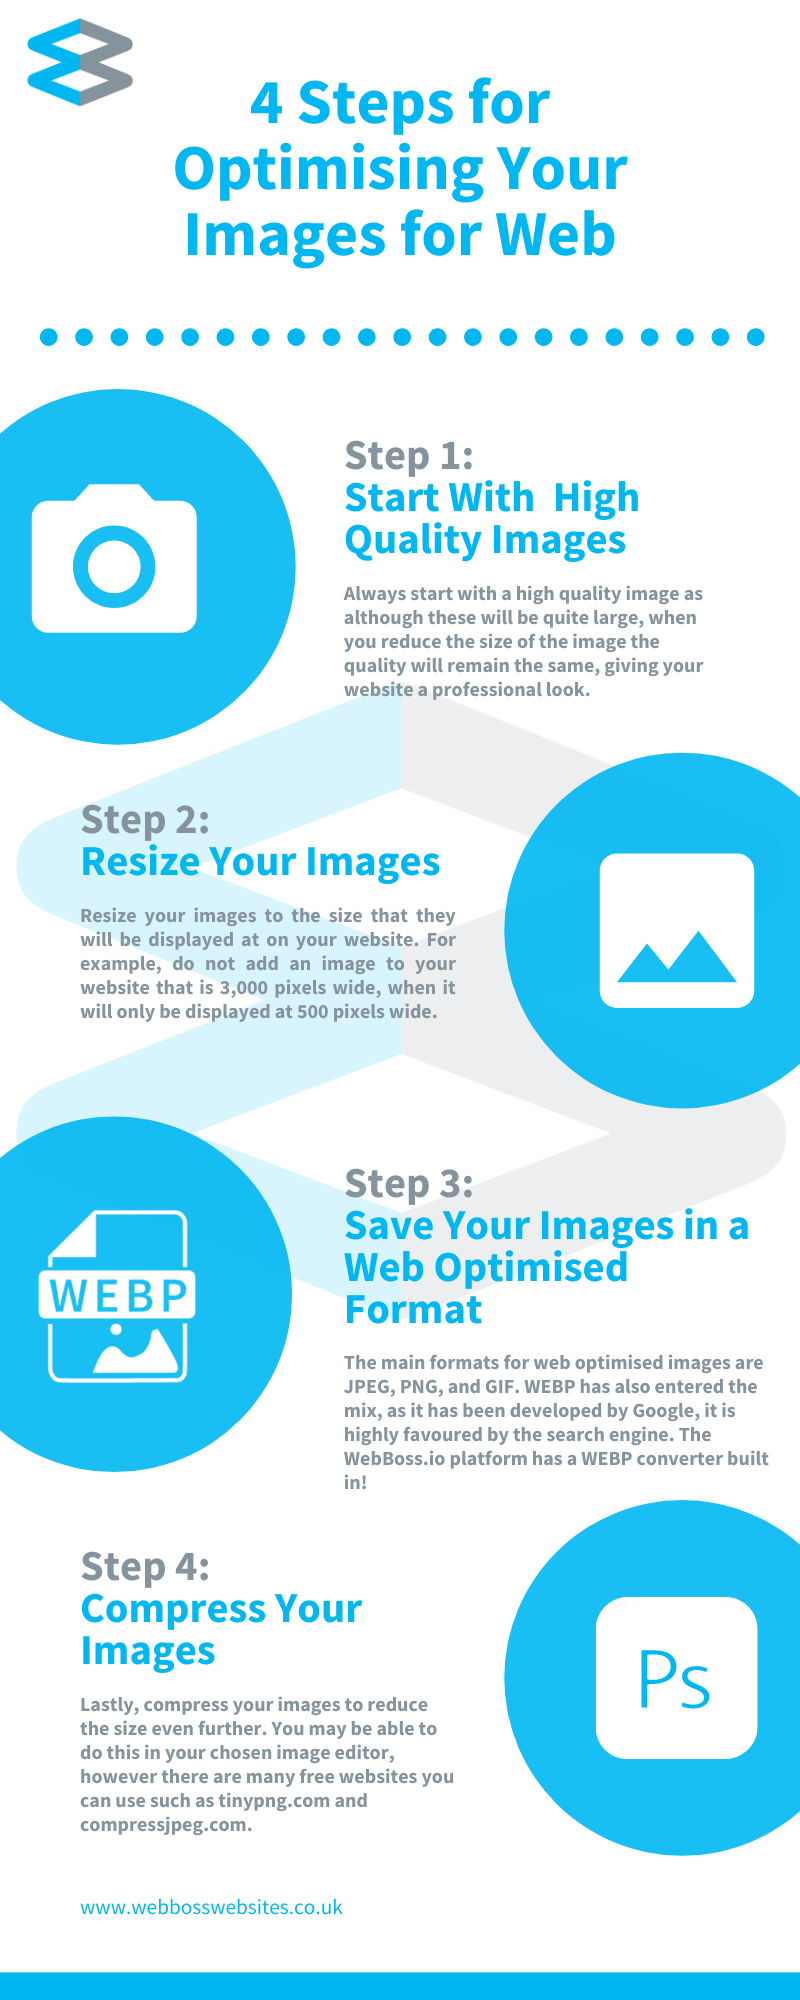 optimising-your-images-for-web-9-1